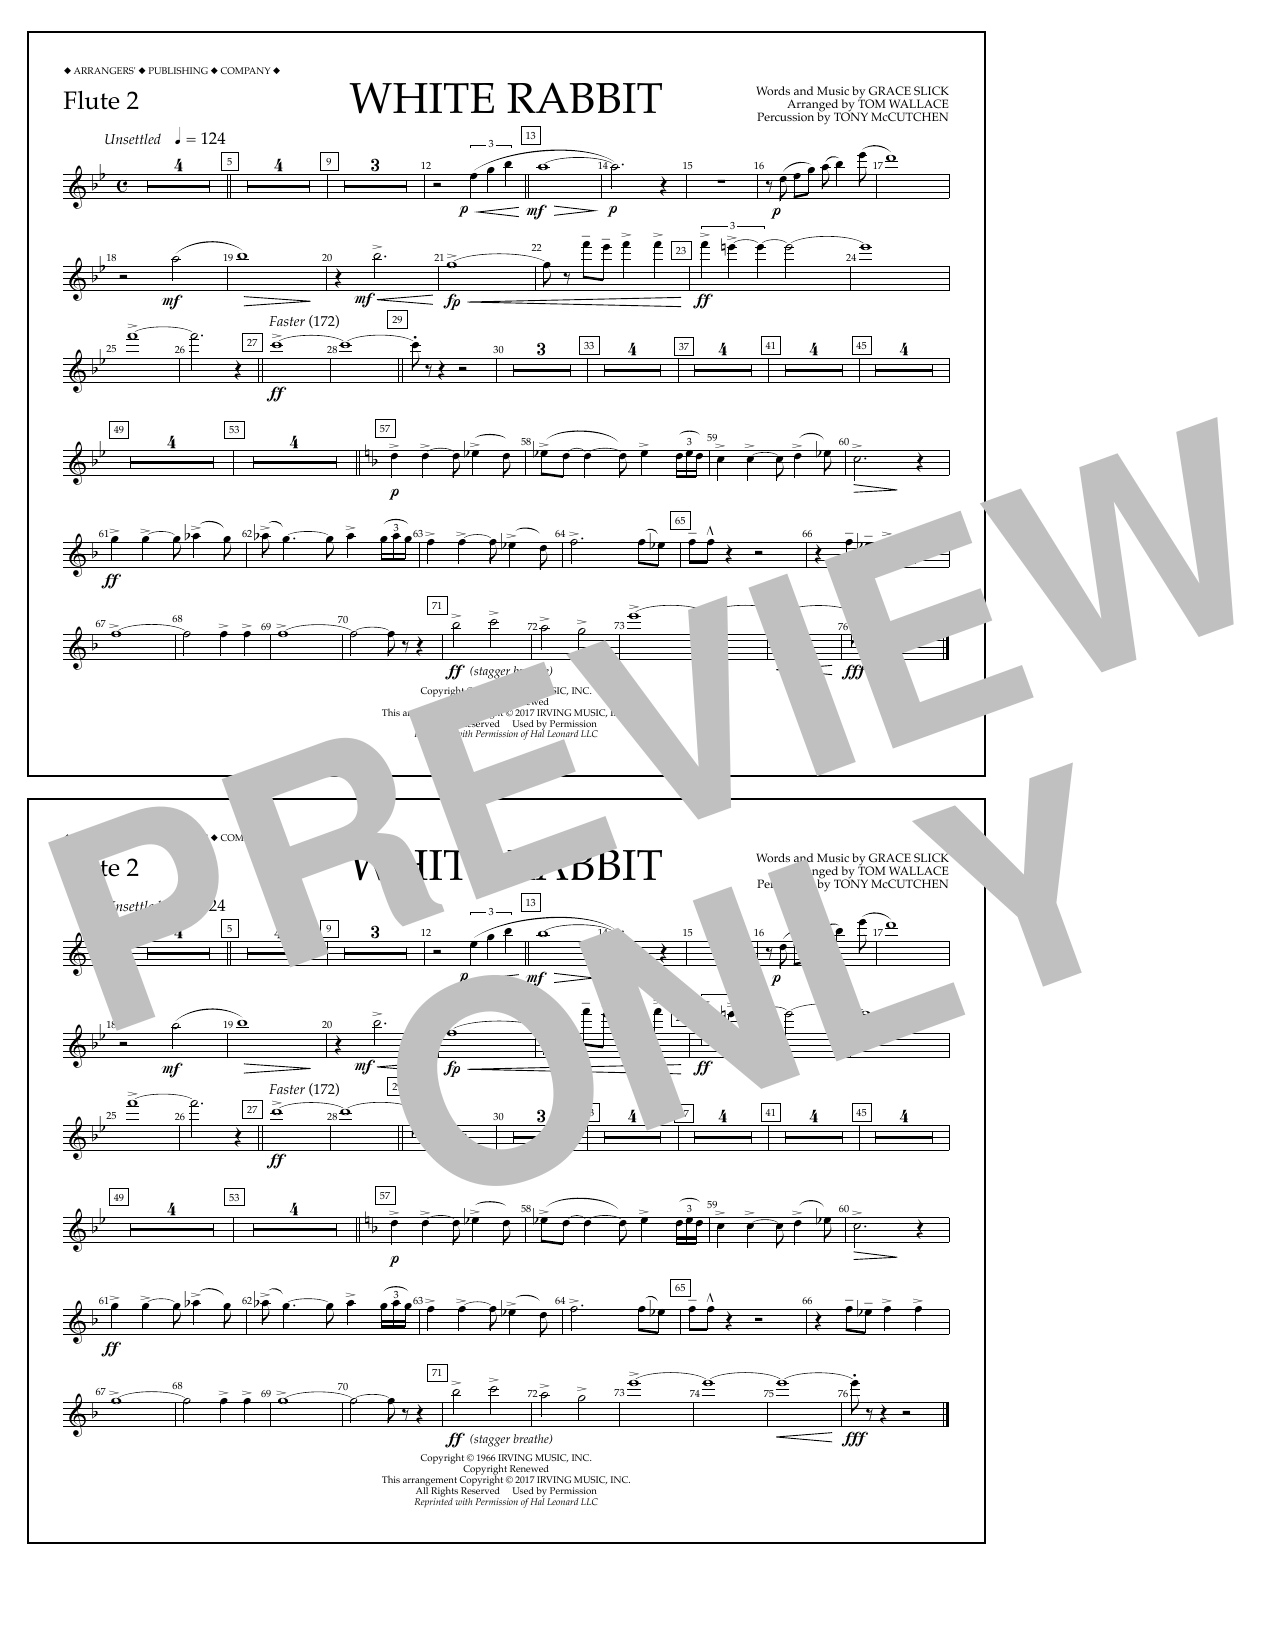 White Rabbit - Flute 2 Sheet Music